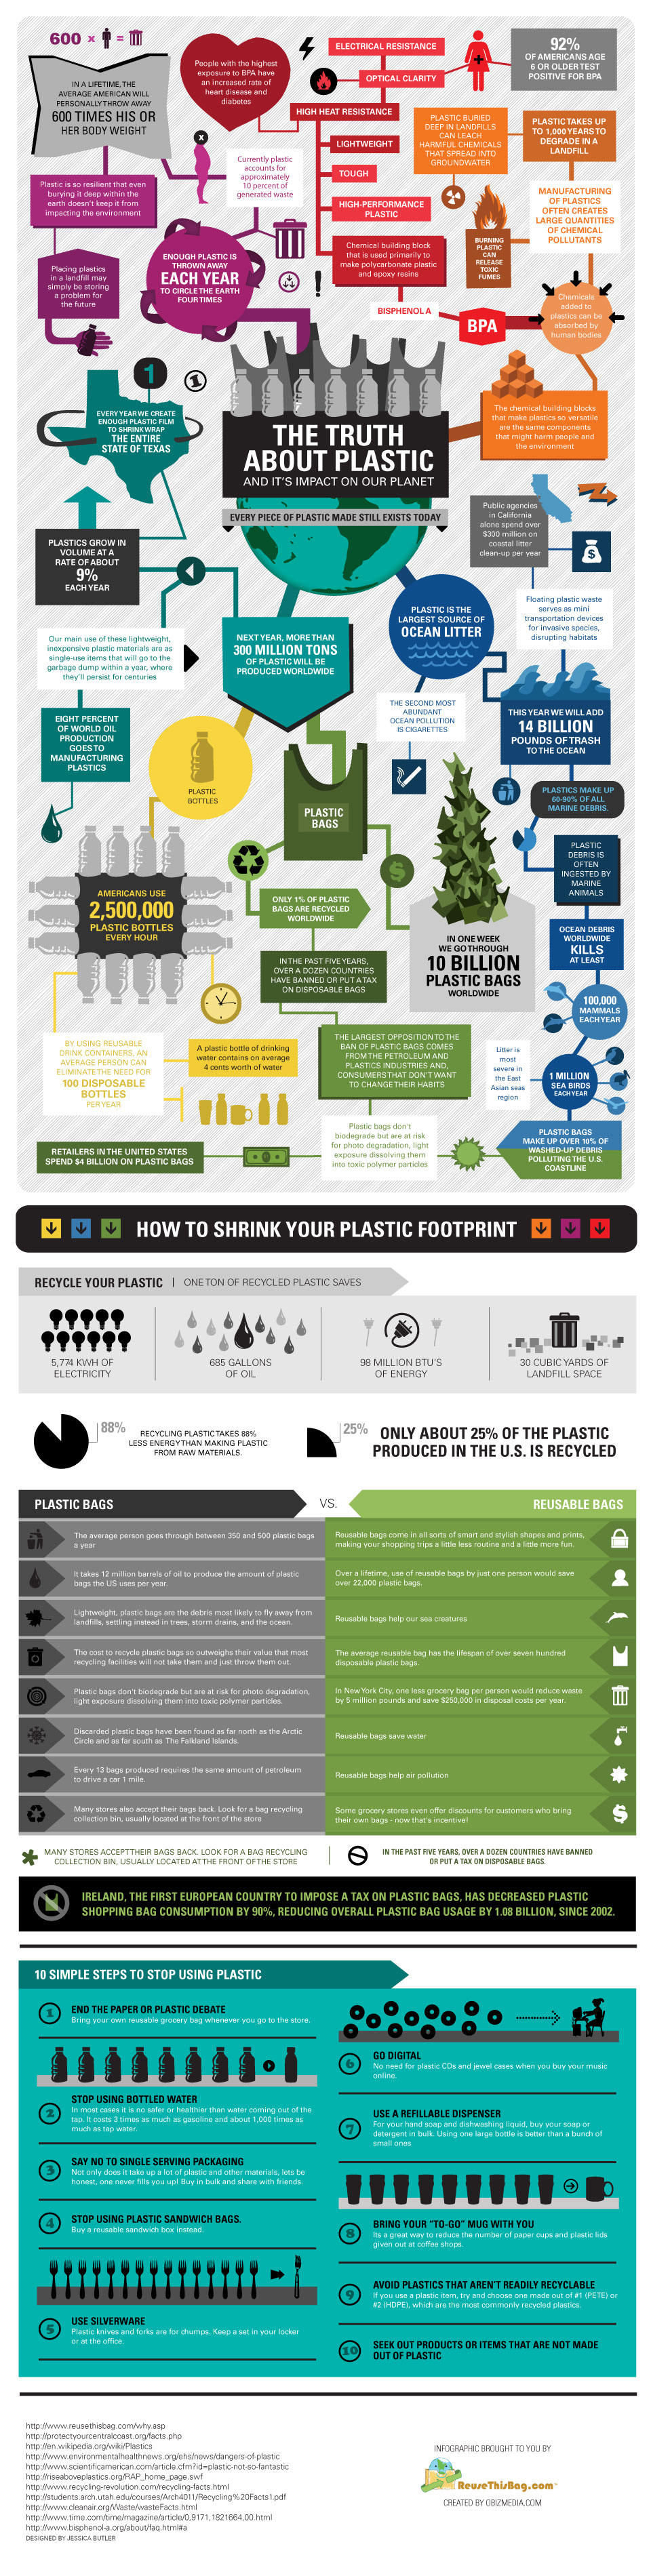 The truth about plastic - infographic